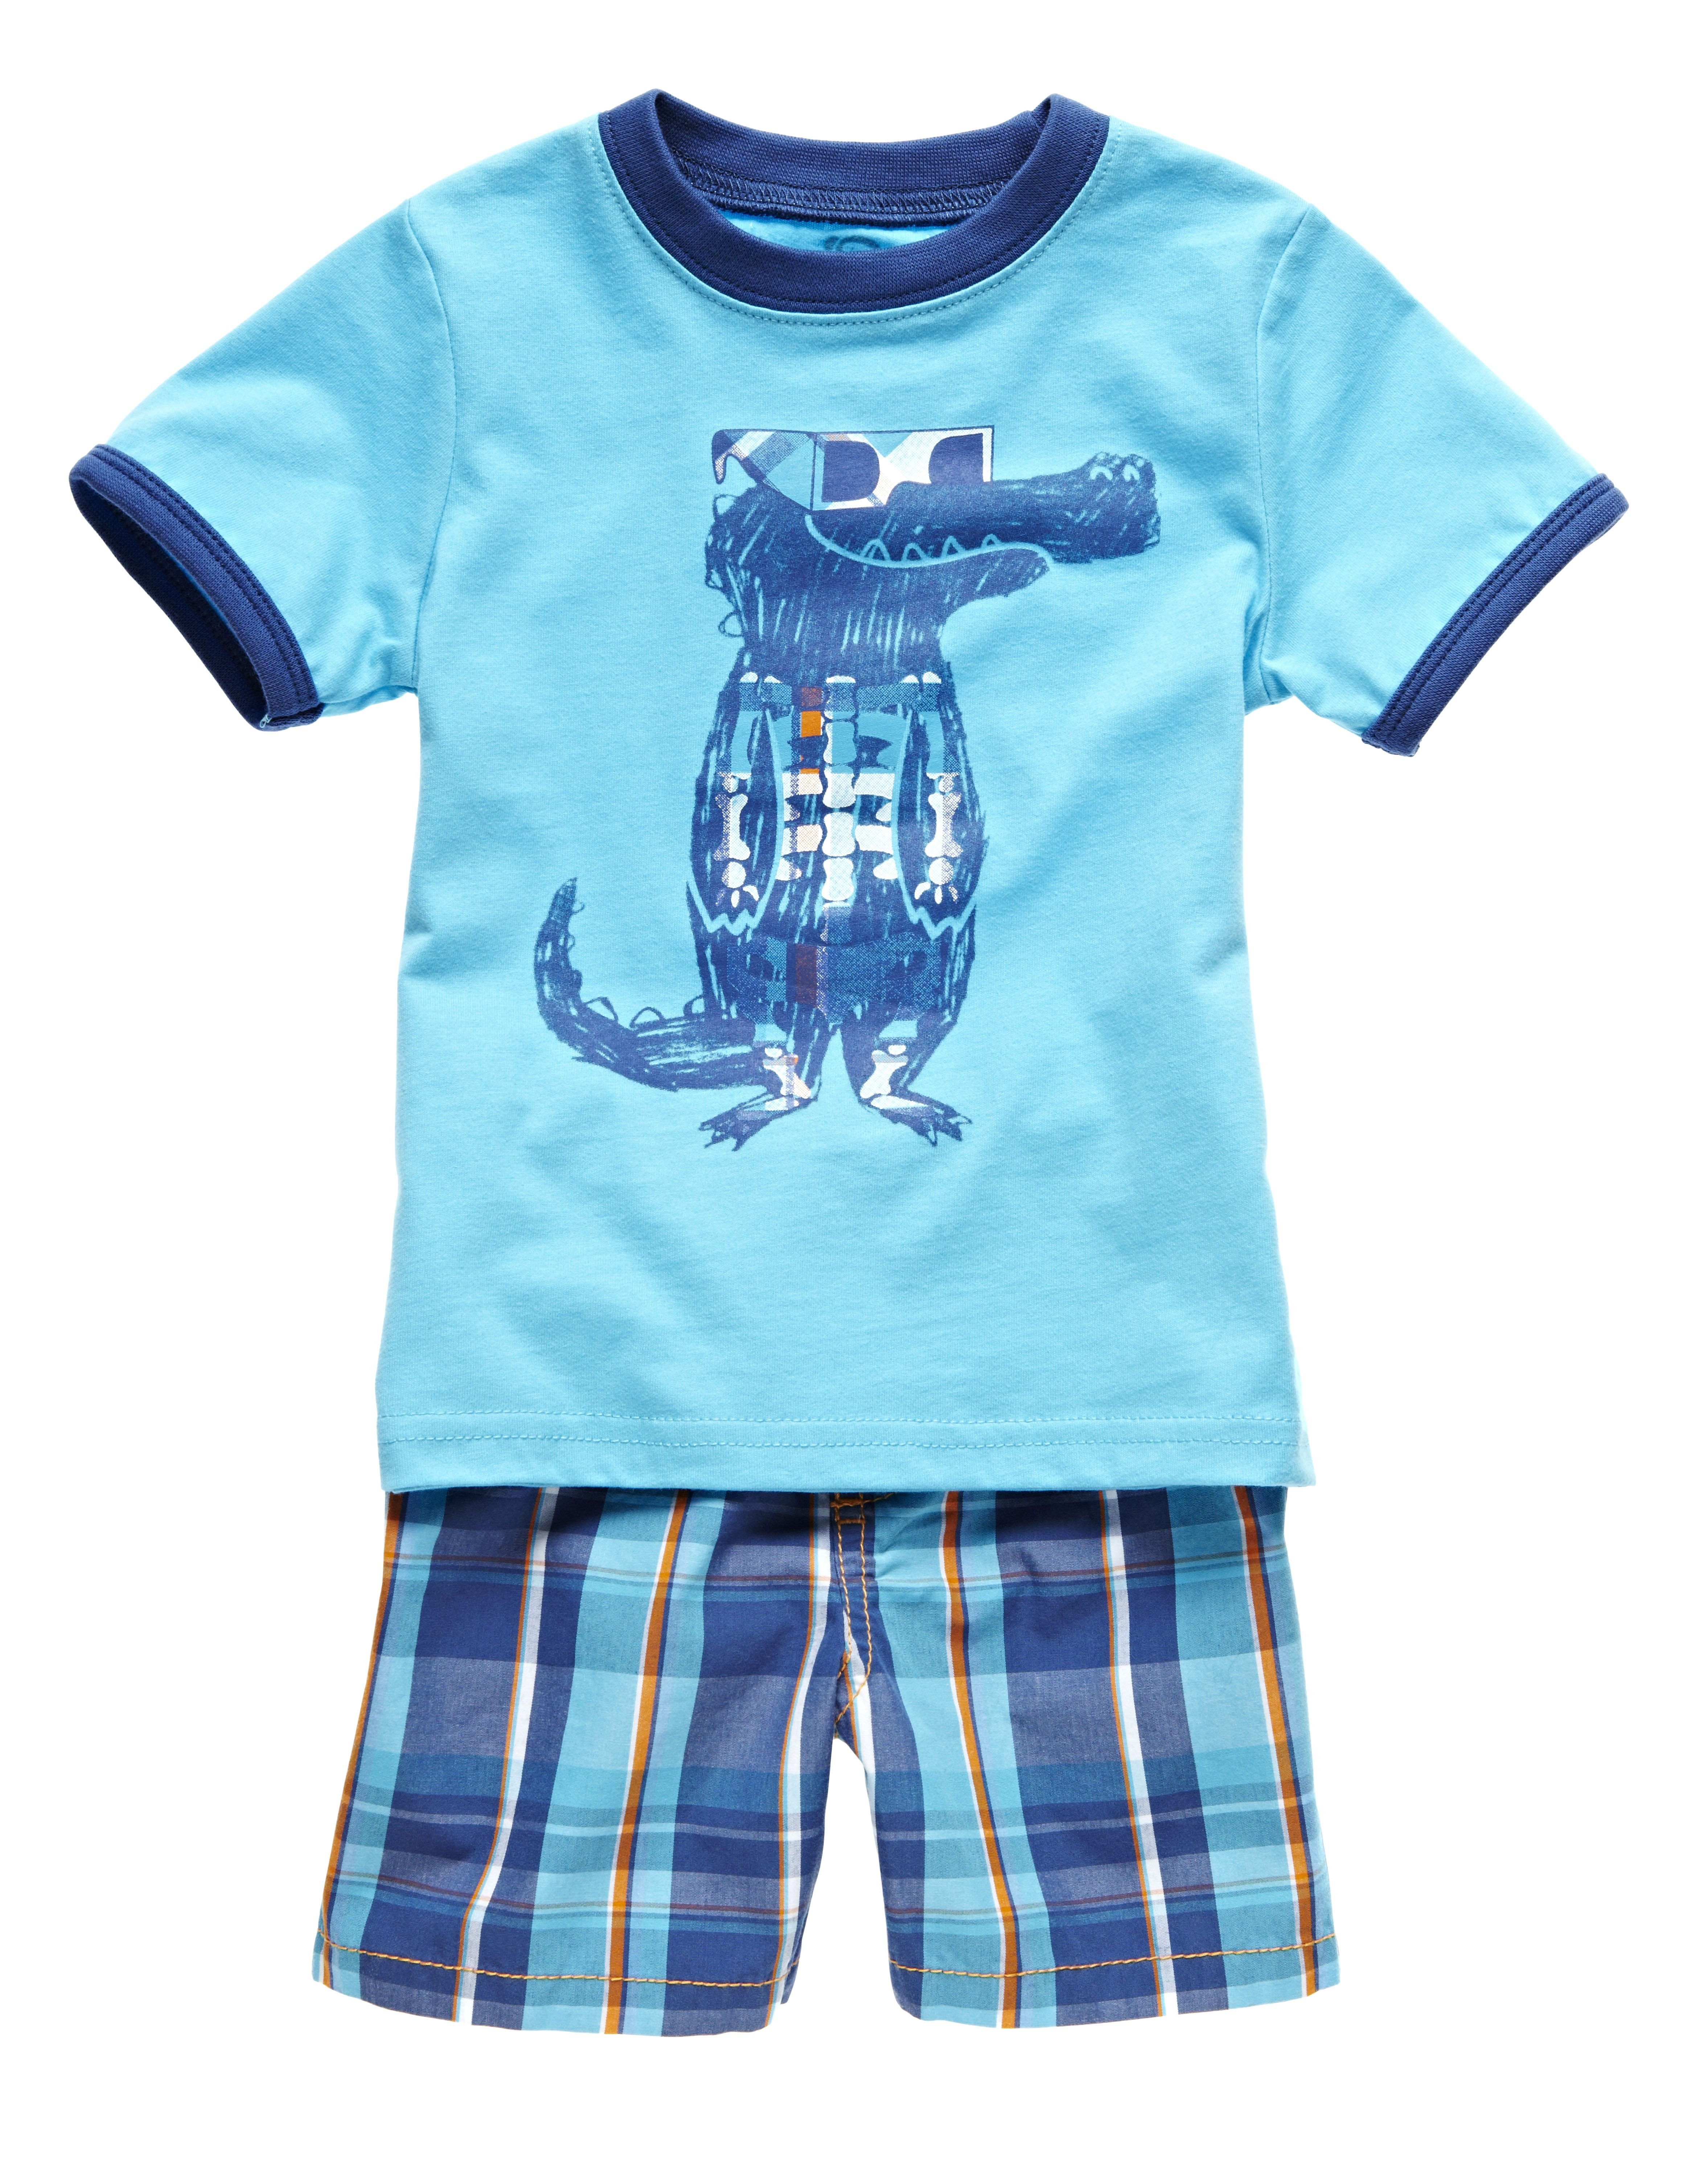 Okie Dokie boys tee and shorts For the Kids Pinterest